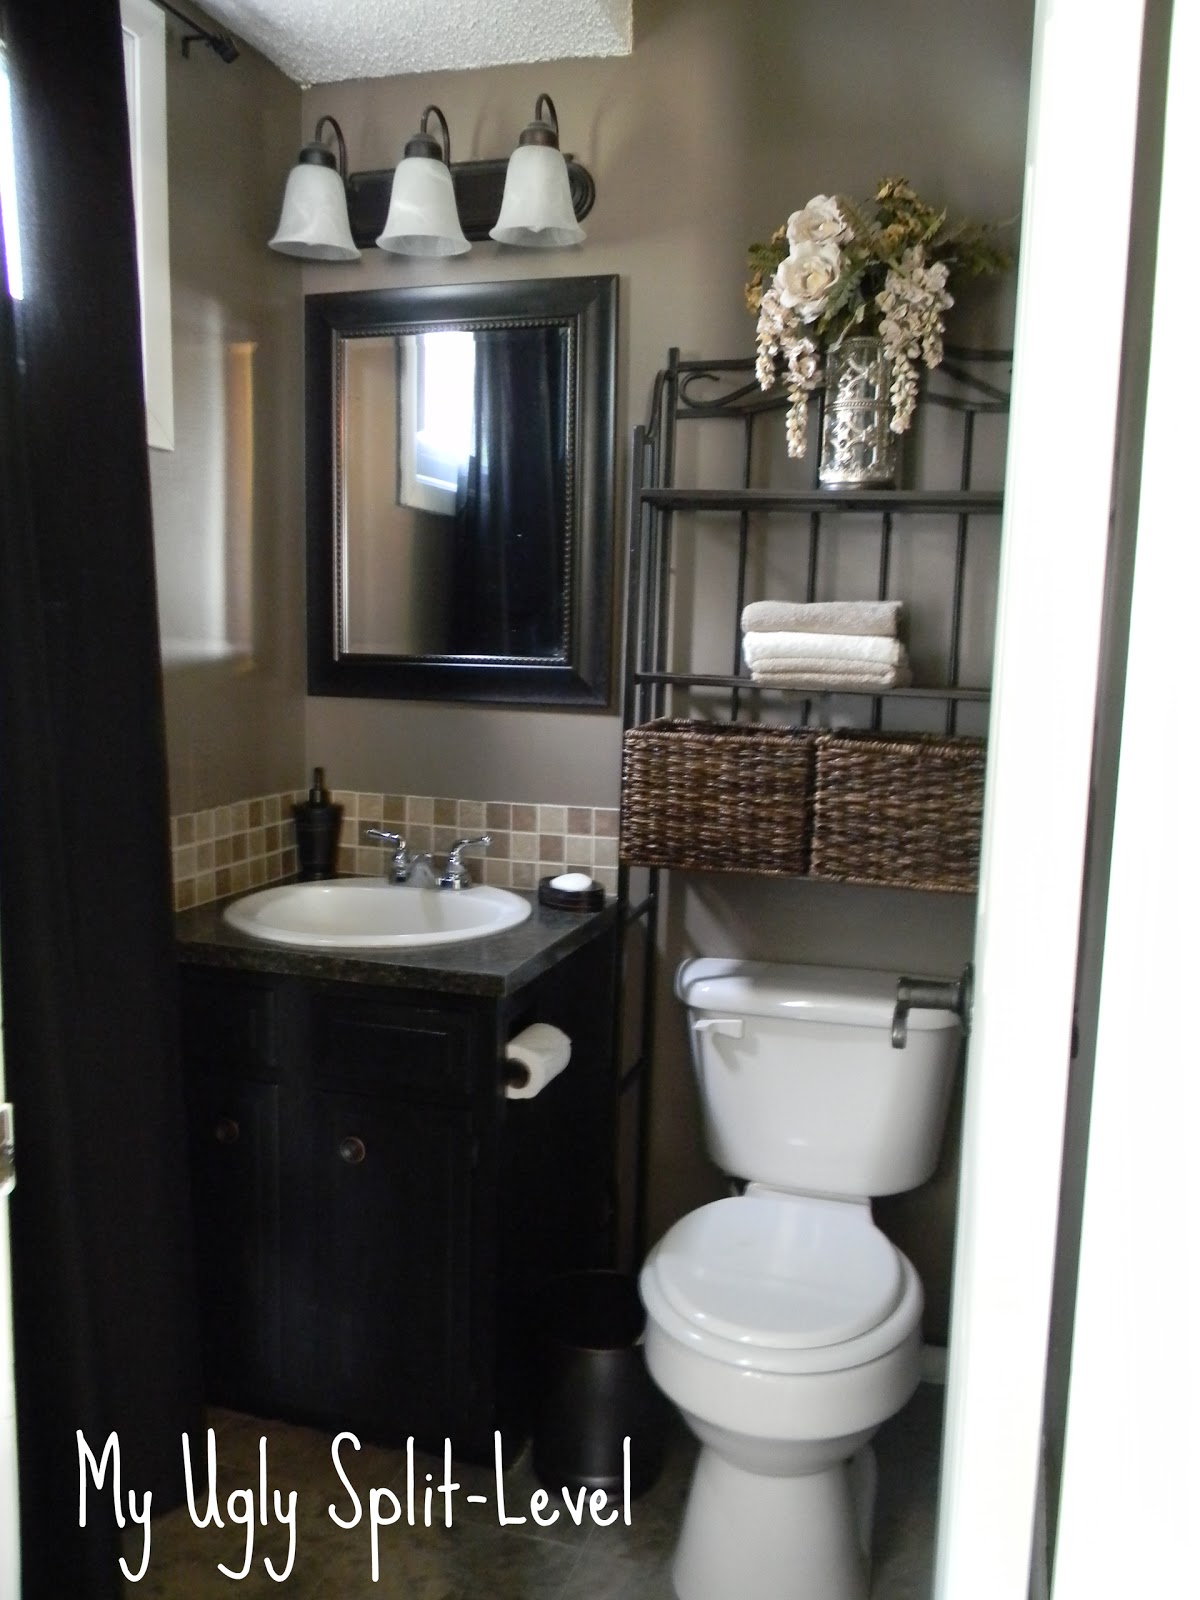 My ugly split level the back bathroom for Photos of small bathrooms design ideas